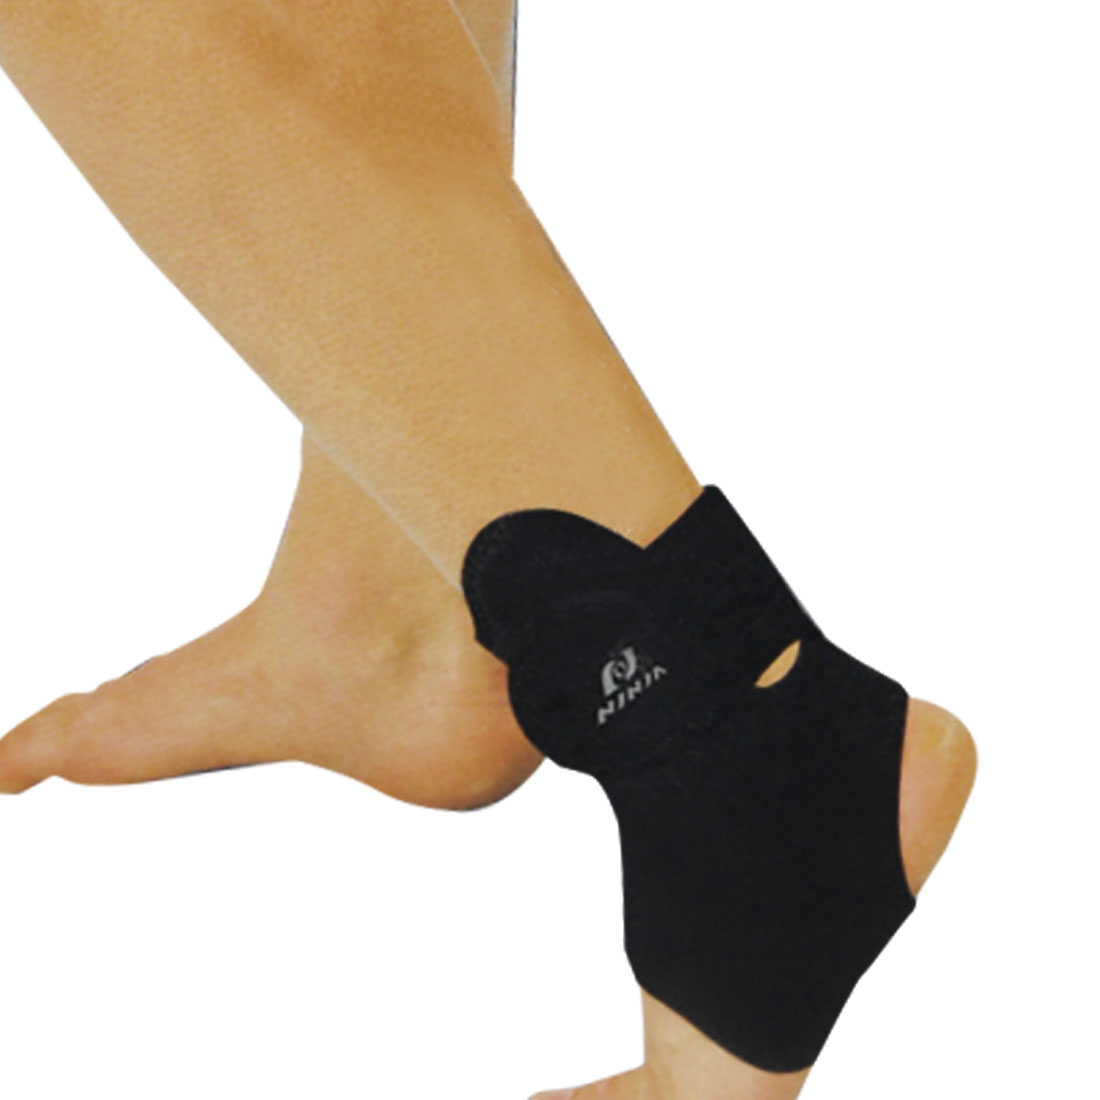 Black Adjustable Stretchy Neoprene Ankle Support Protector